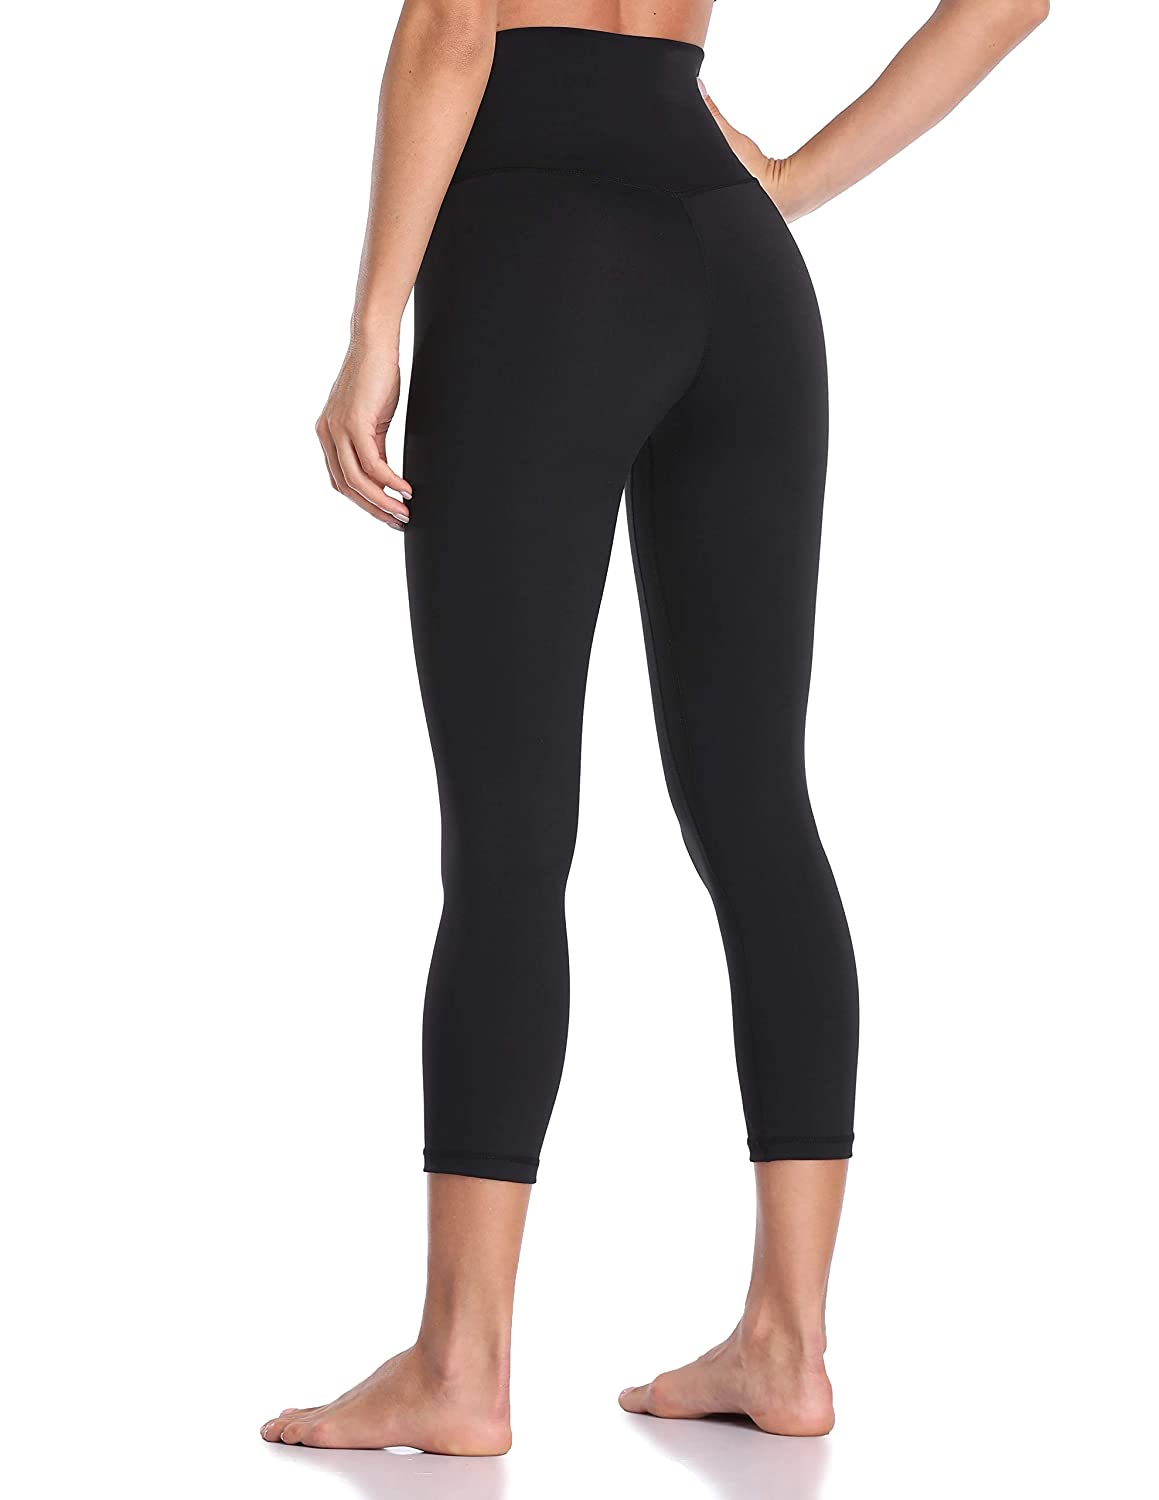 3b3d54ada2a06 Amazon.com: Colorfulkoala Women's Buttery Soft High Waisted Yoga Capris 21